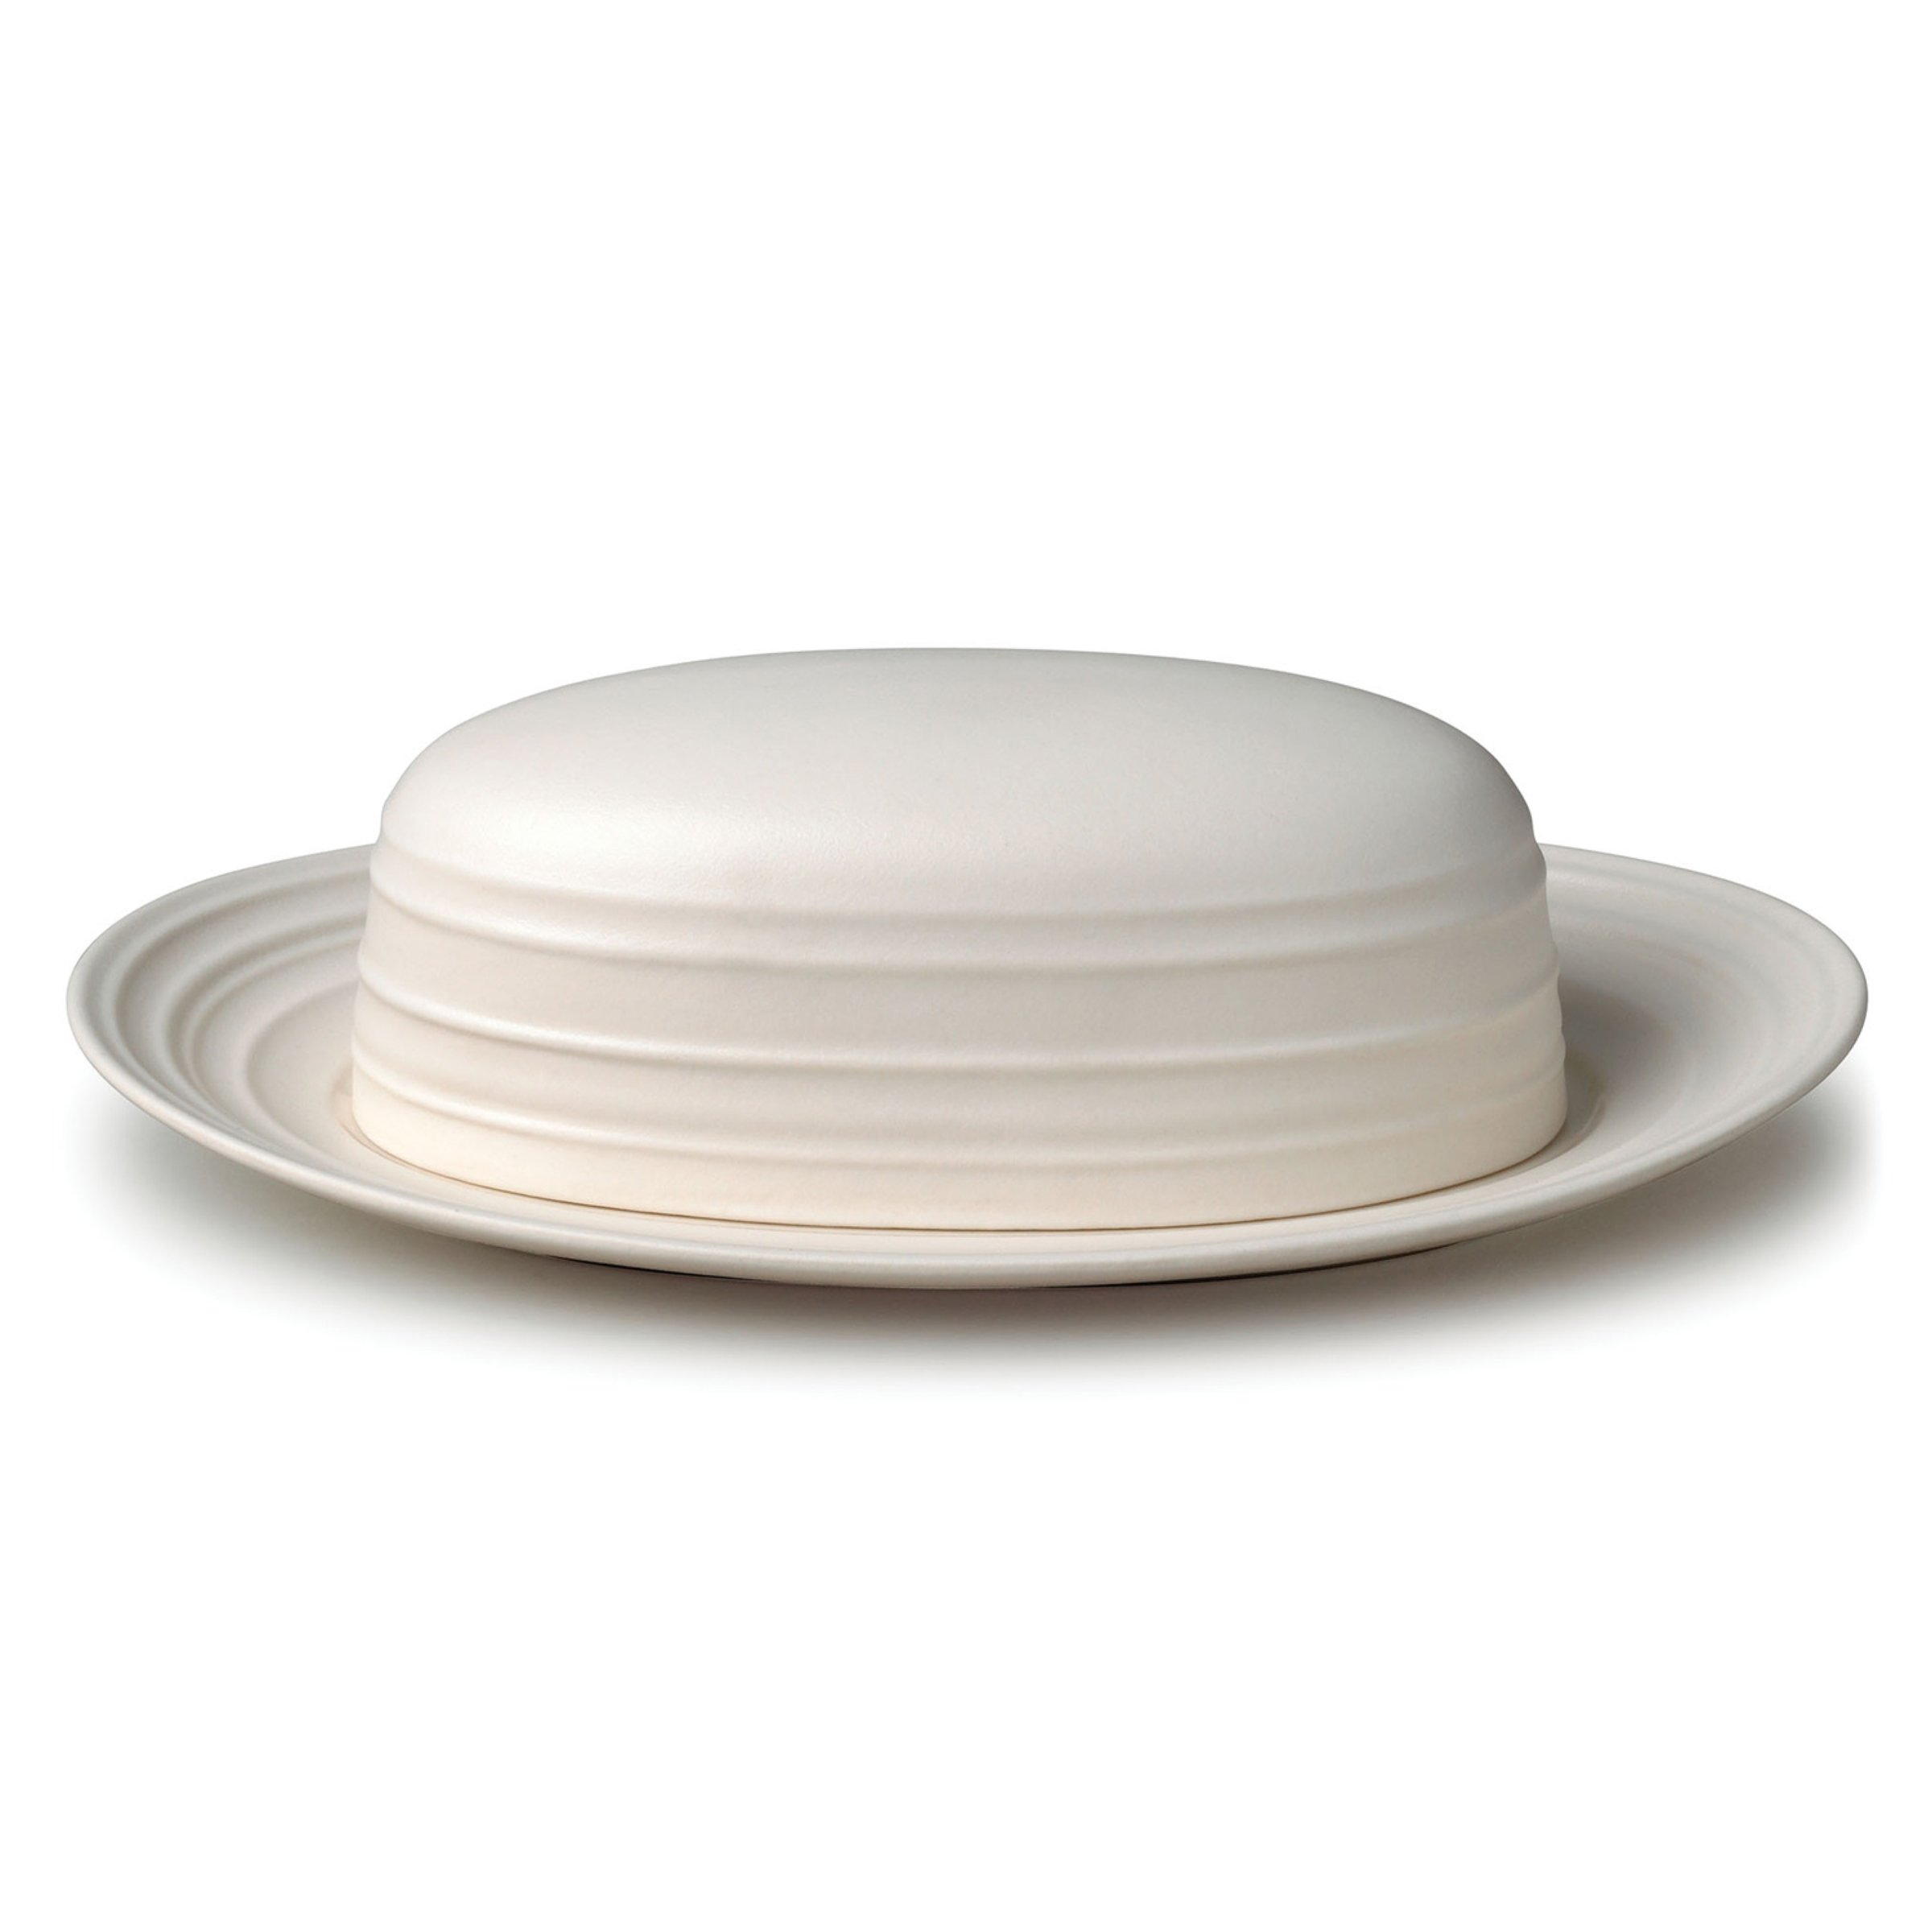 Mikasa Swirl White Covered Butter Dish, 9-Inch